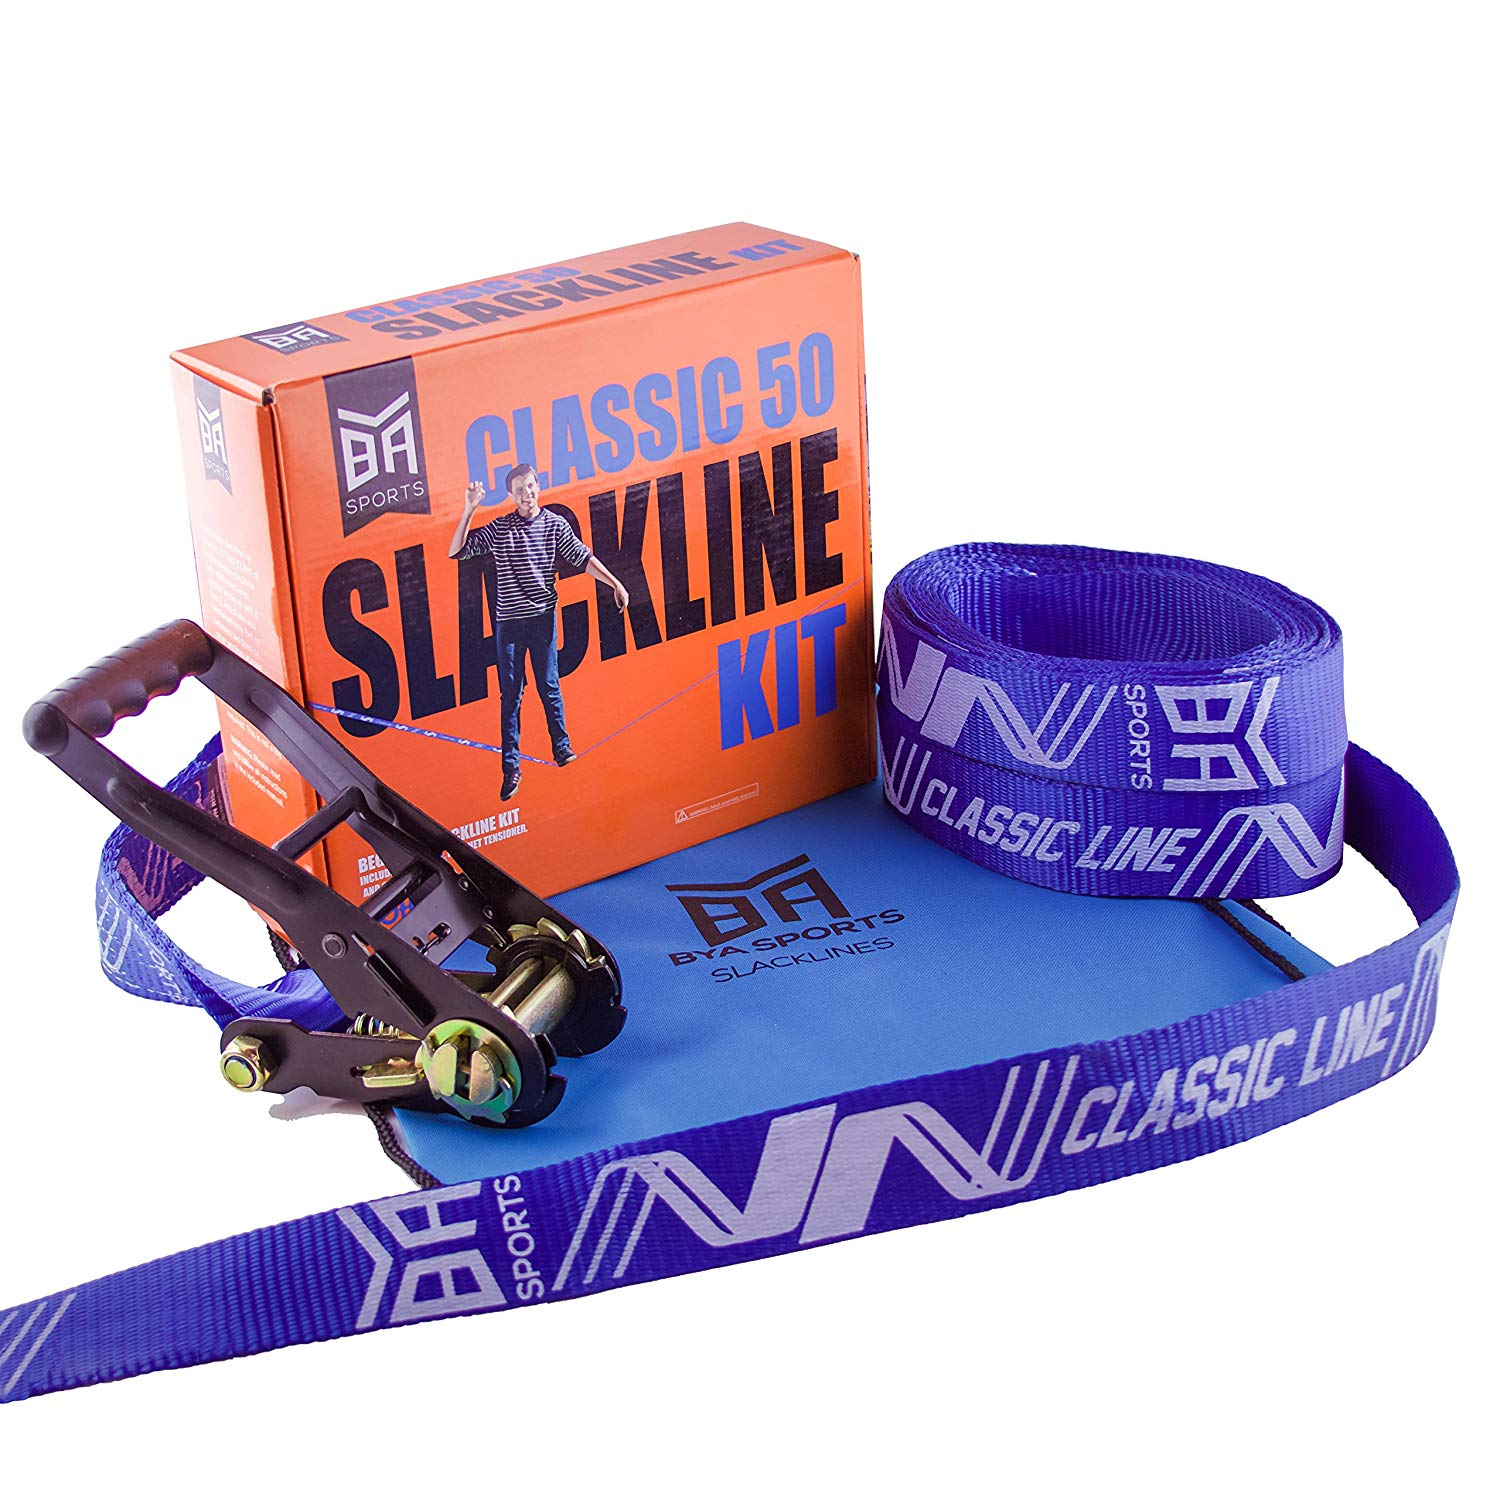 Bring Your Adventure Sports BYA Classic Line - 50ft or 85ft Beginner Slackline Kit with Carry Bag and Instructions